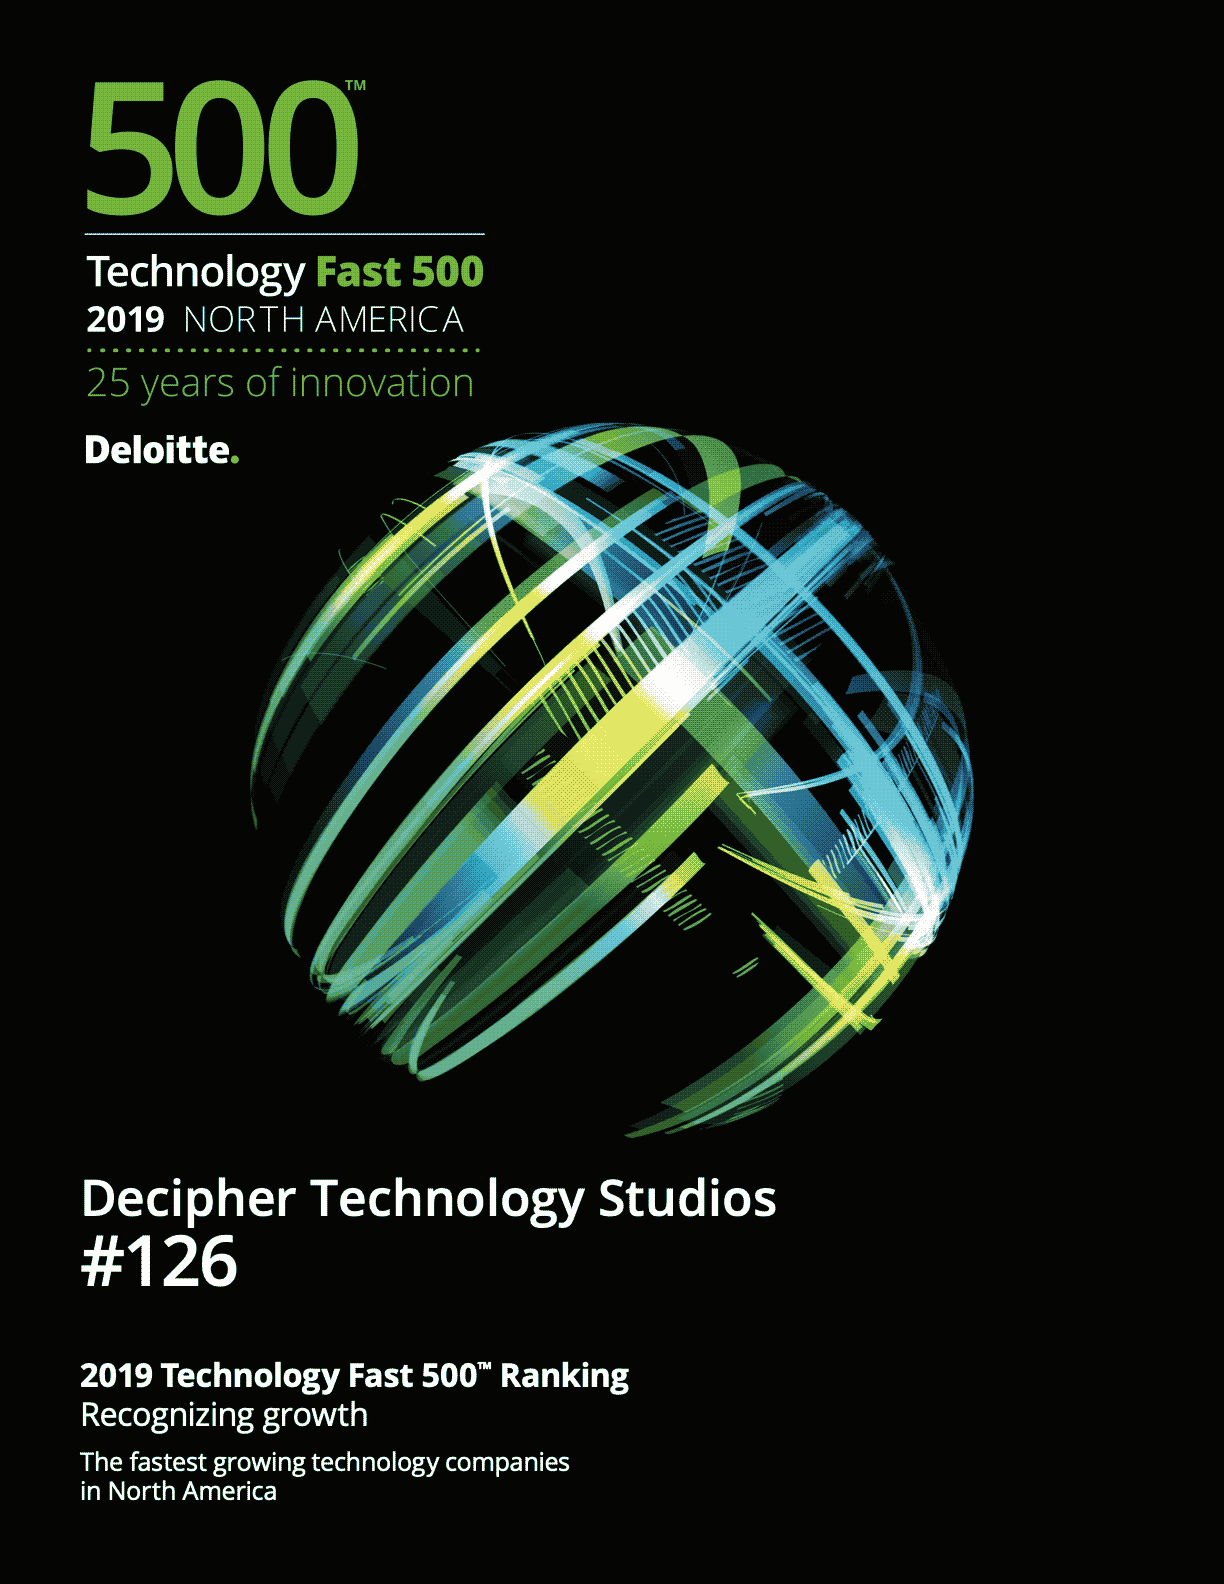 Document describing Decipher's being awarded #126 in Deloitte's 2019 Technology Fast 500 Ranking